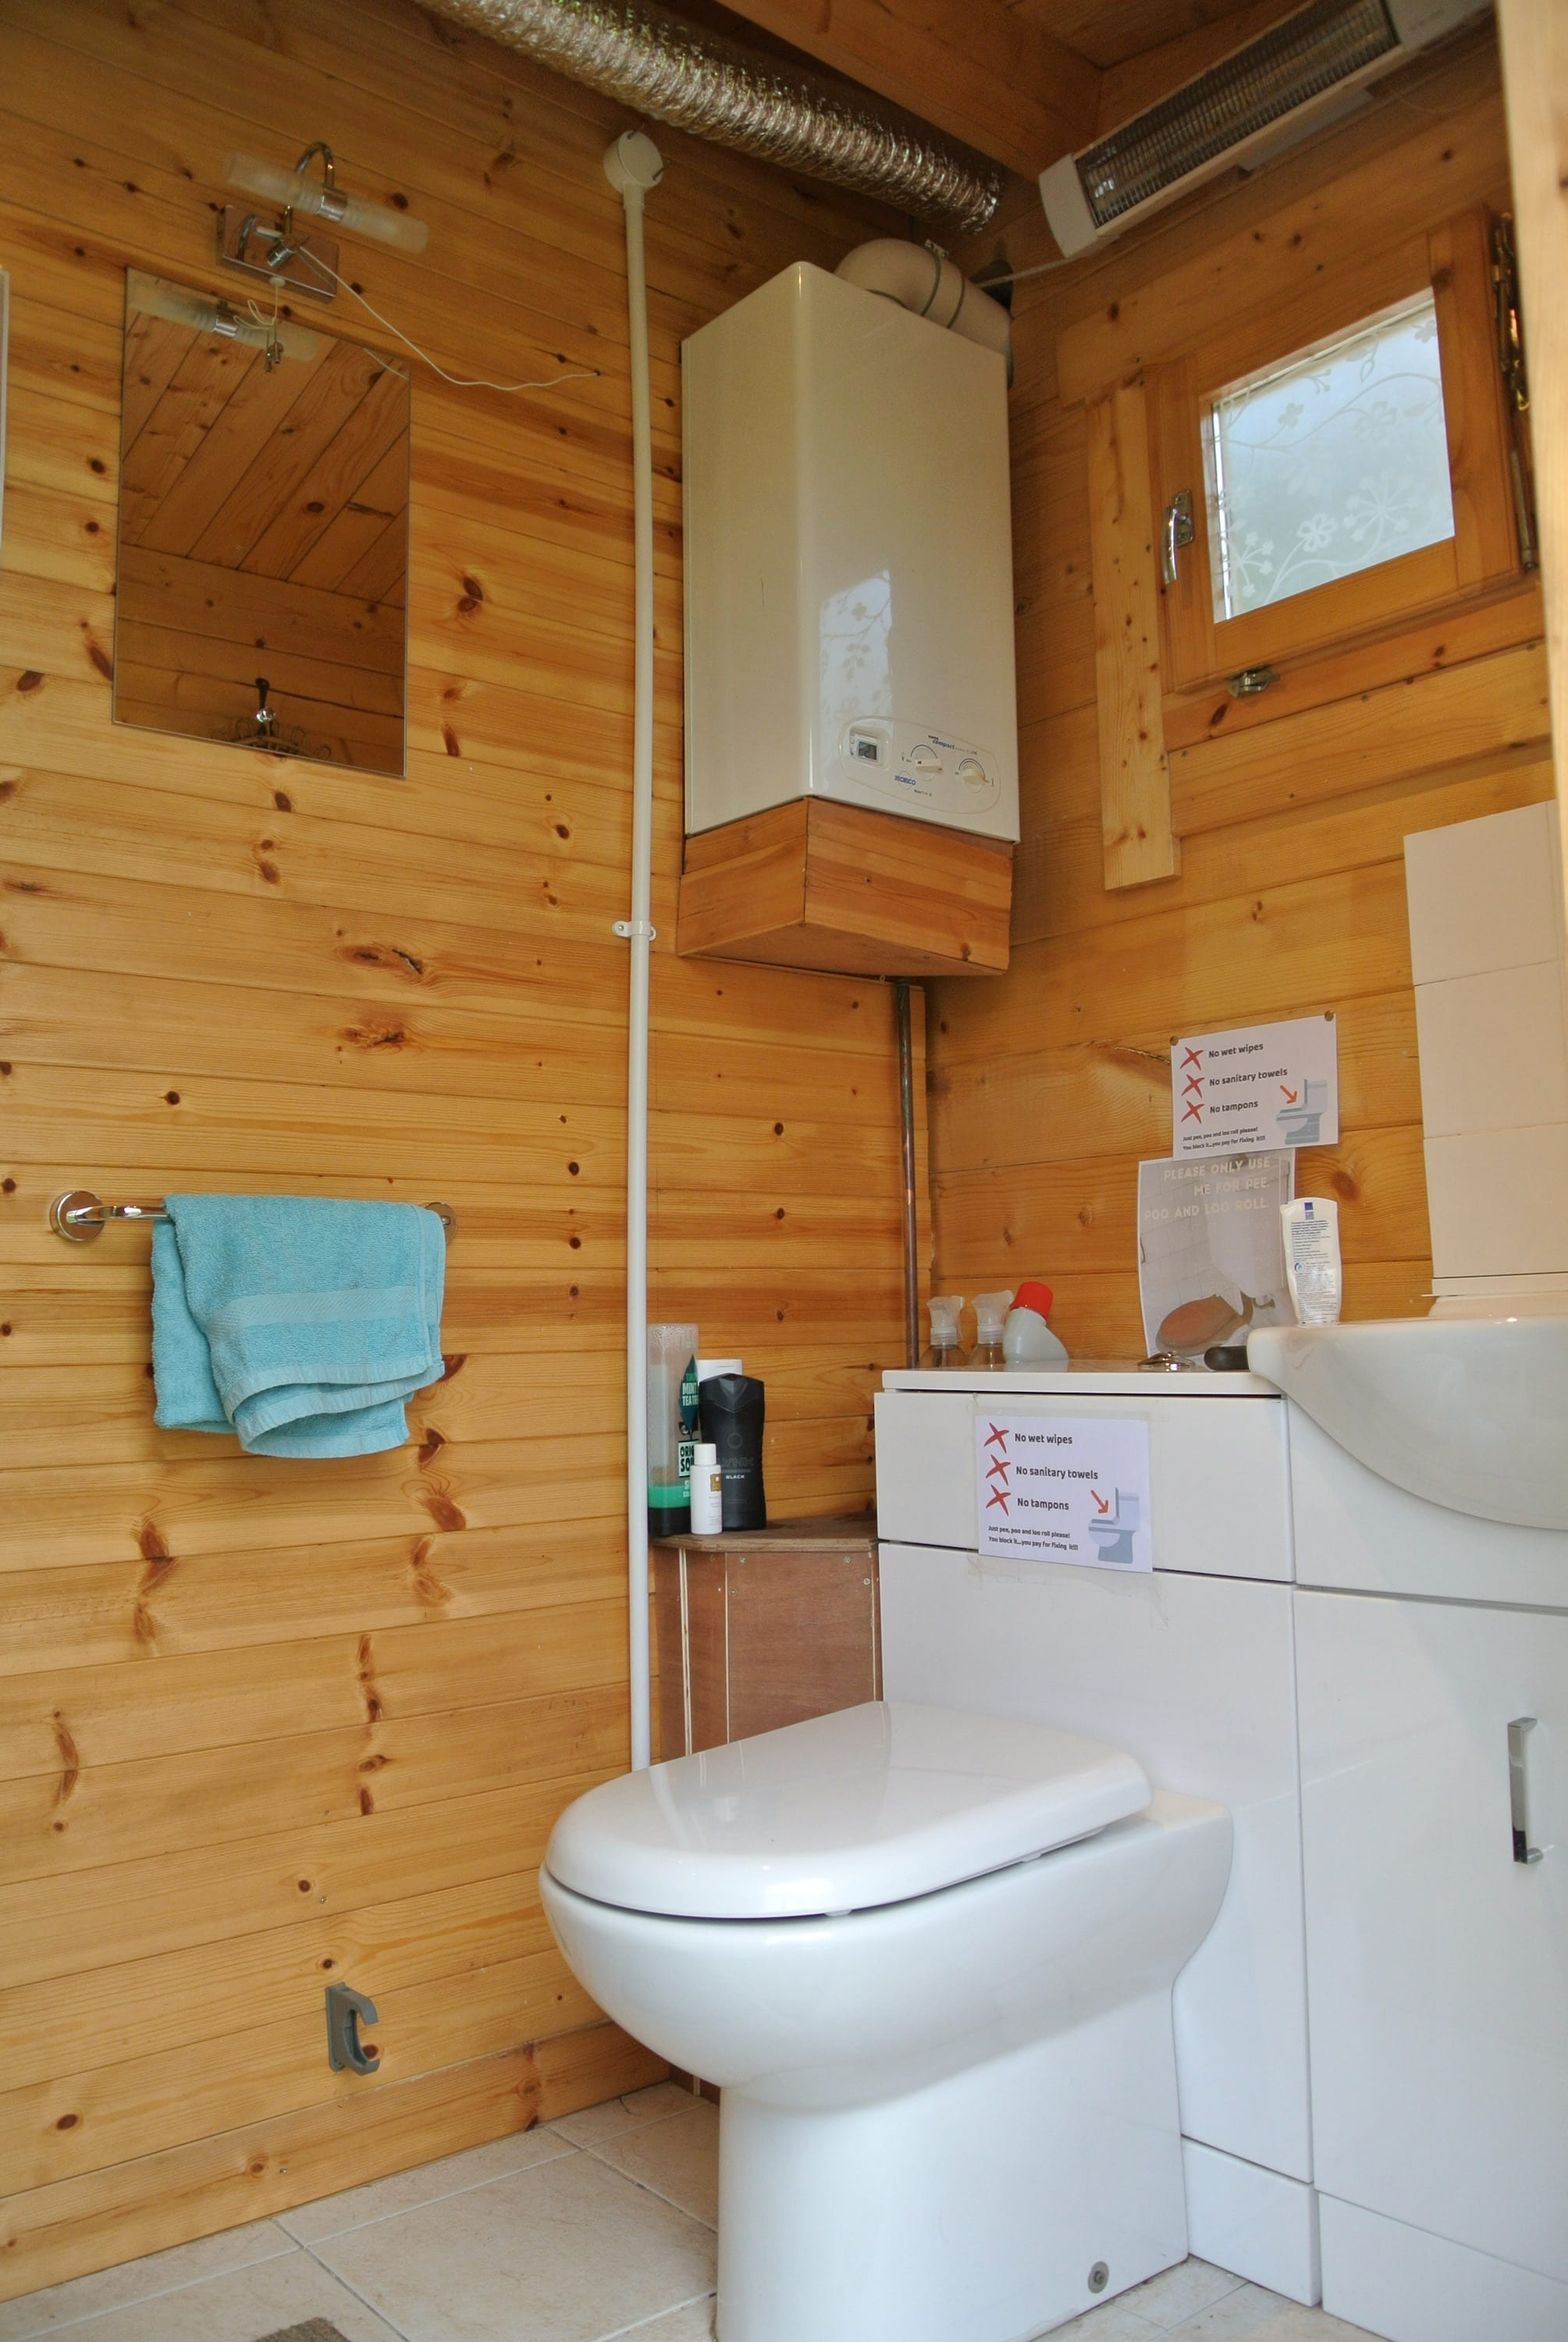 Log cabin bathroom flushing loo and sink off grid sustainable eco glampsite and glamping